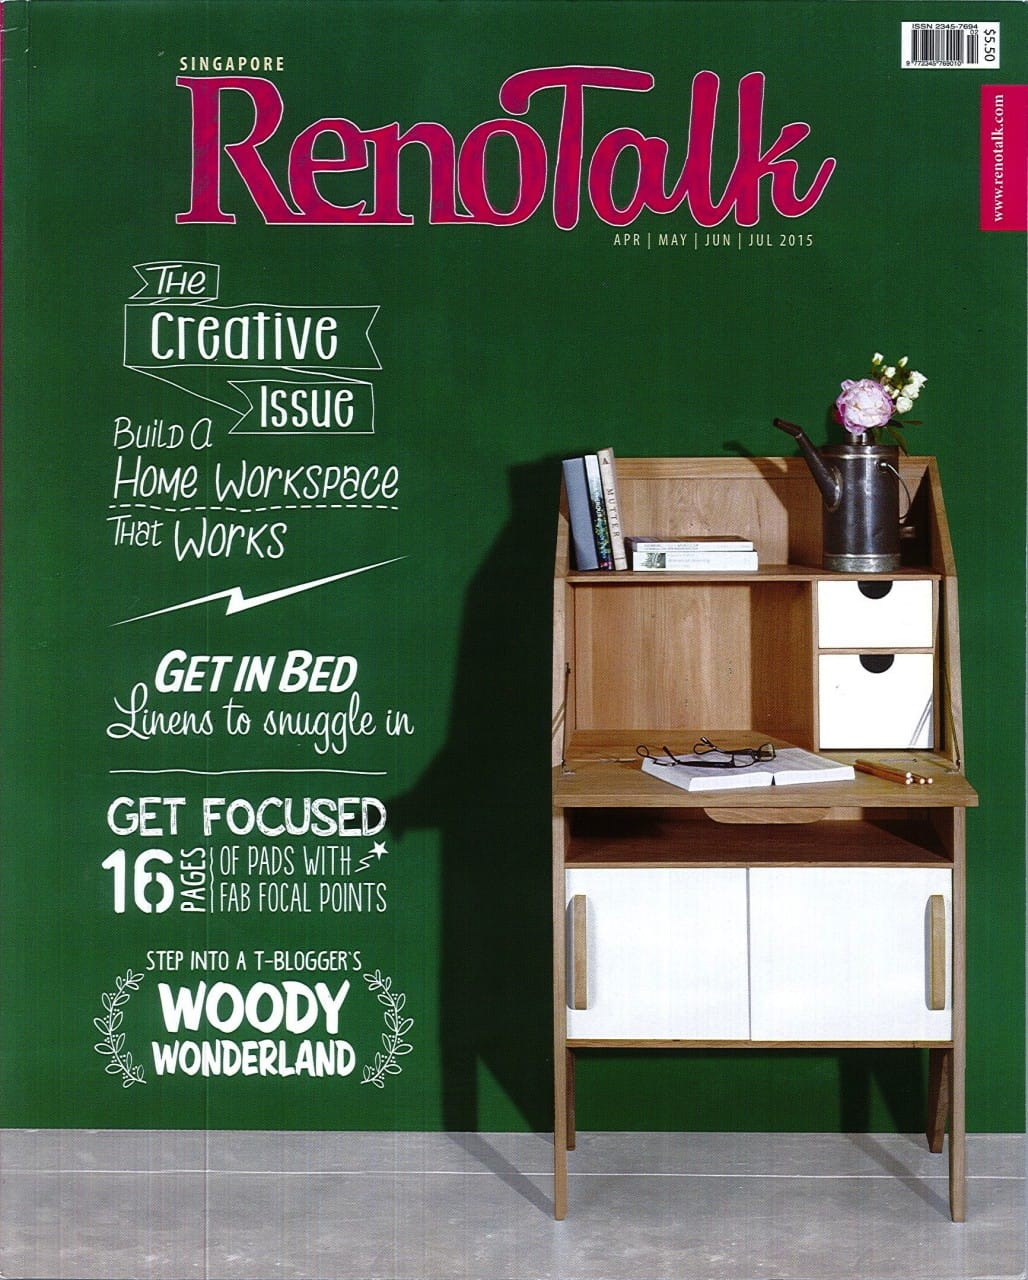 RenoTalk - Apr to Jul 2015 Issue